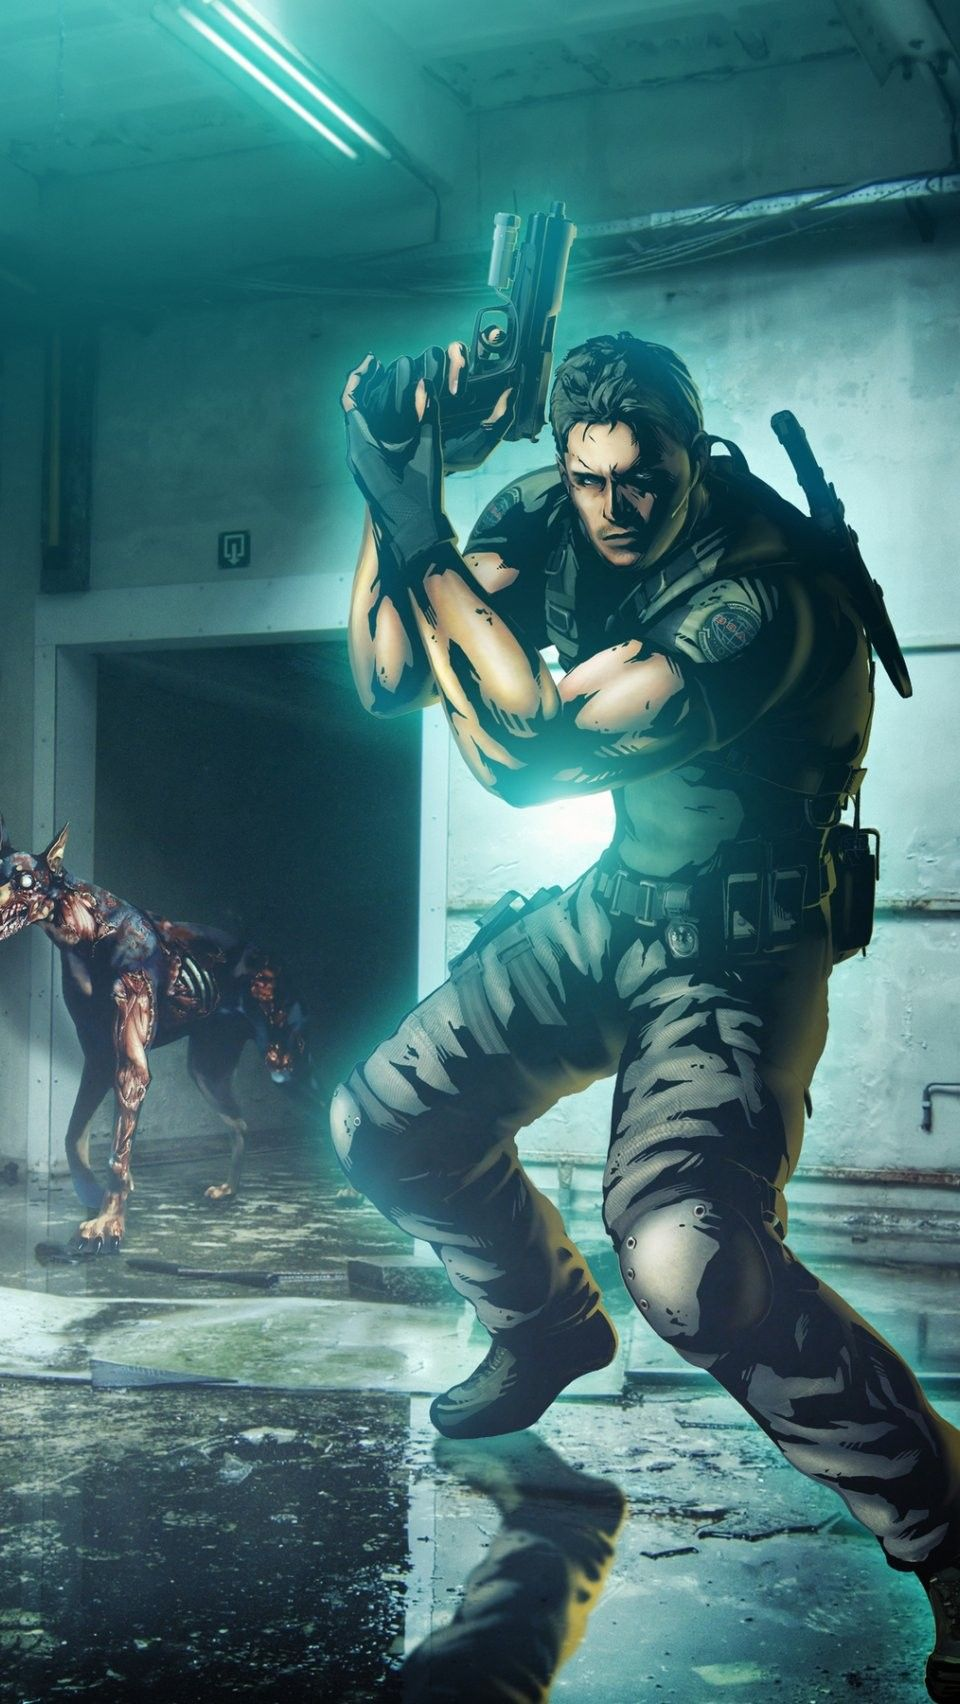 Chris Redfield Marvel vs Capcom 3 iPhone 6 wallpaper - Resident Evil iPhone 6 Wallpapers ...